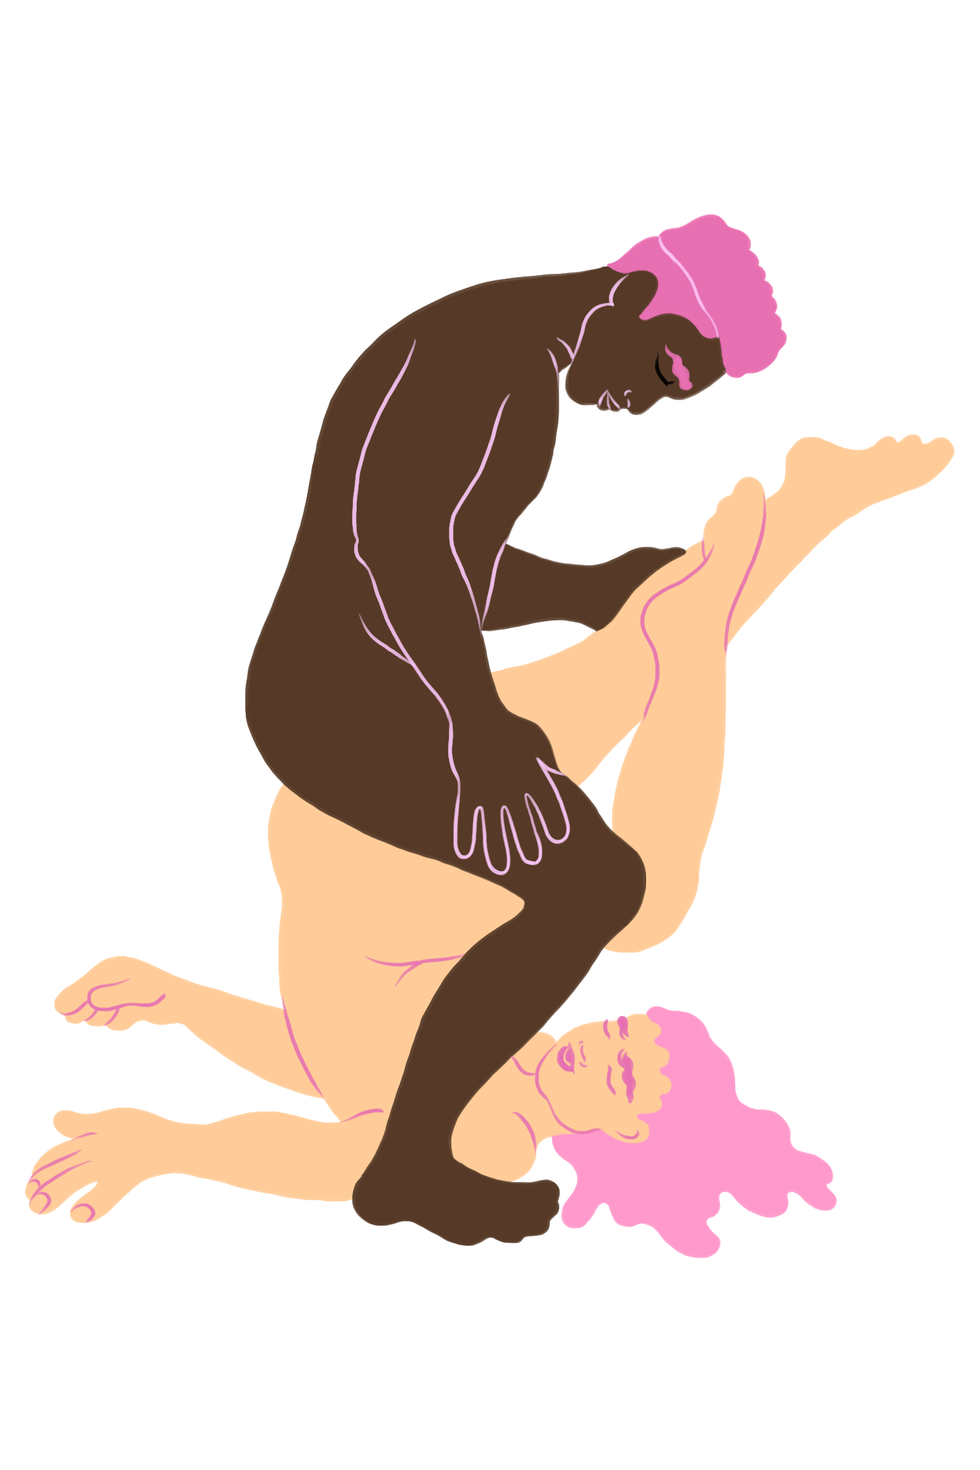 Formation of sexual identity